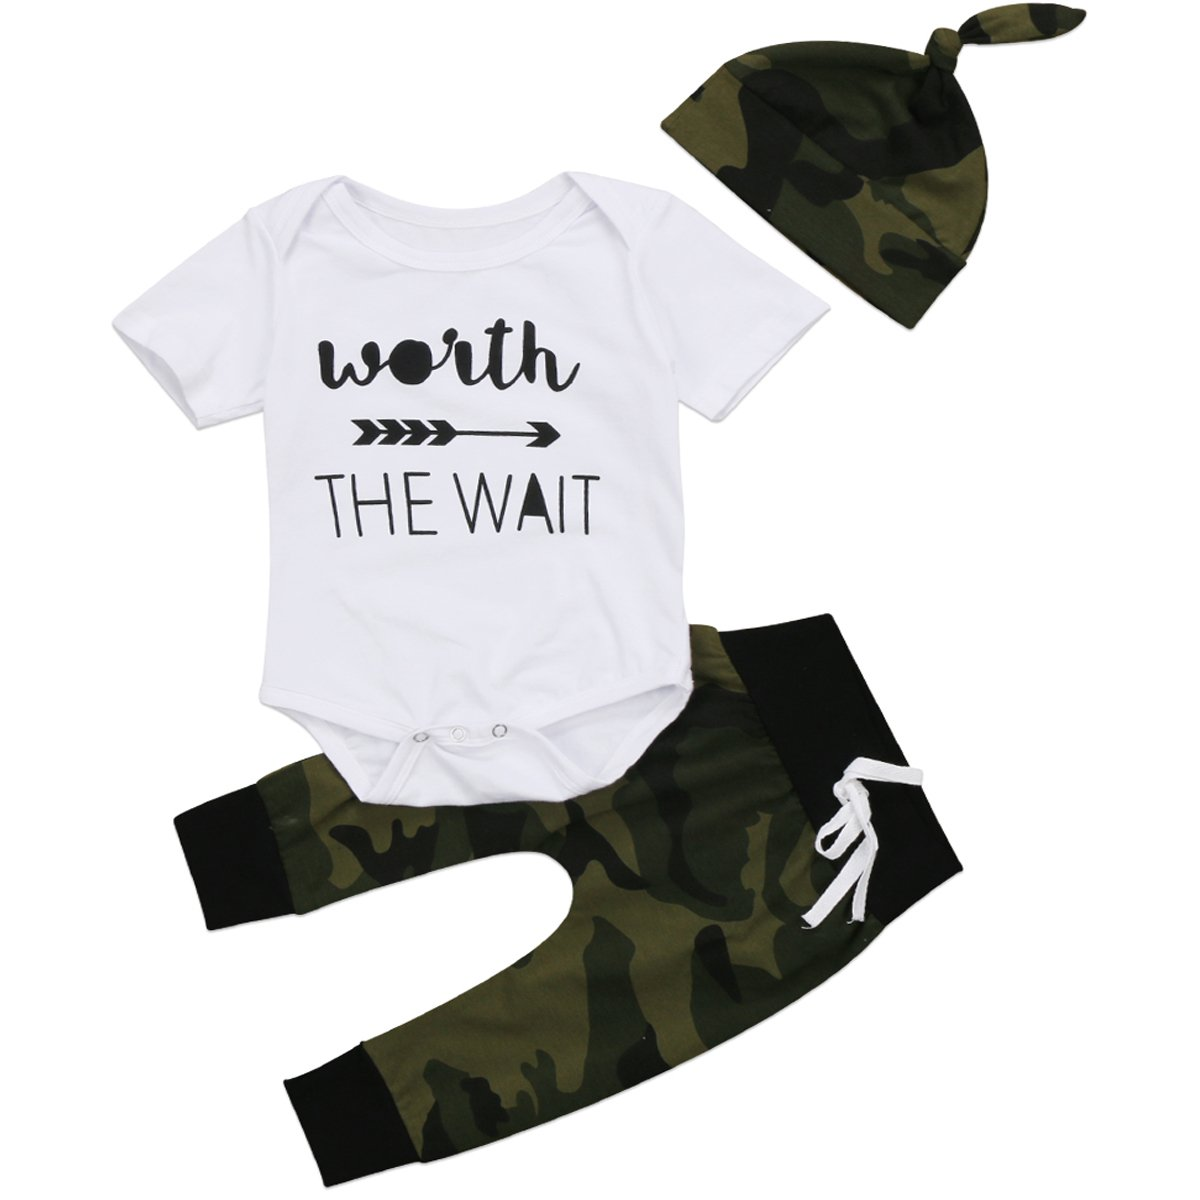 Baby Boys Clothing Sets, 3pcs Newborn Baby Boy Letter Print Romper Tops+Long Pants Hat Outfits Clothes